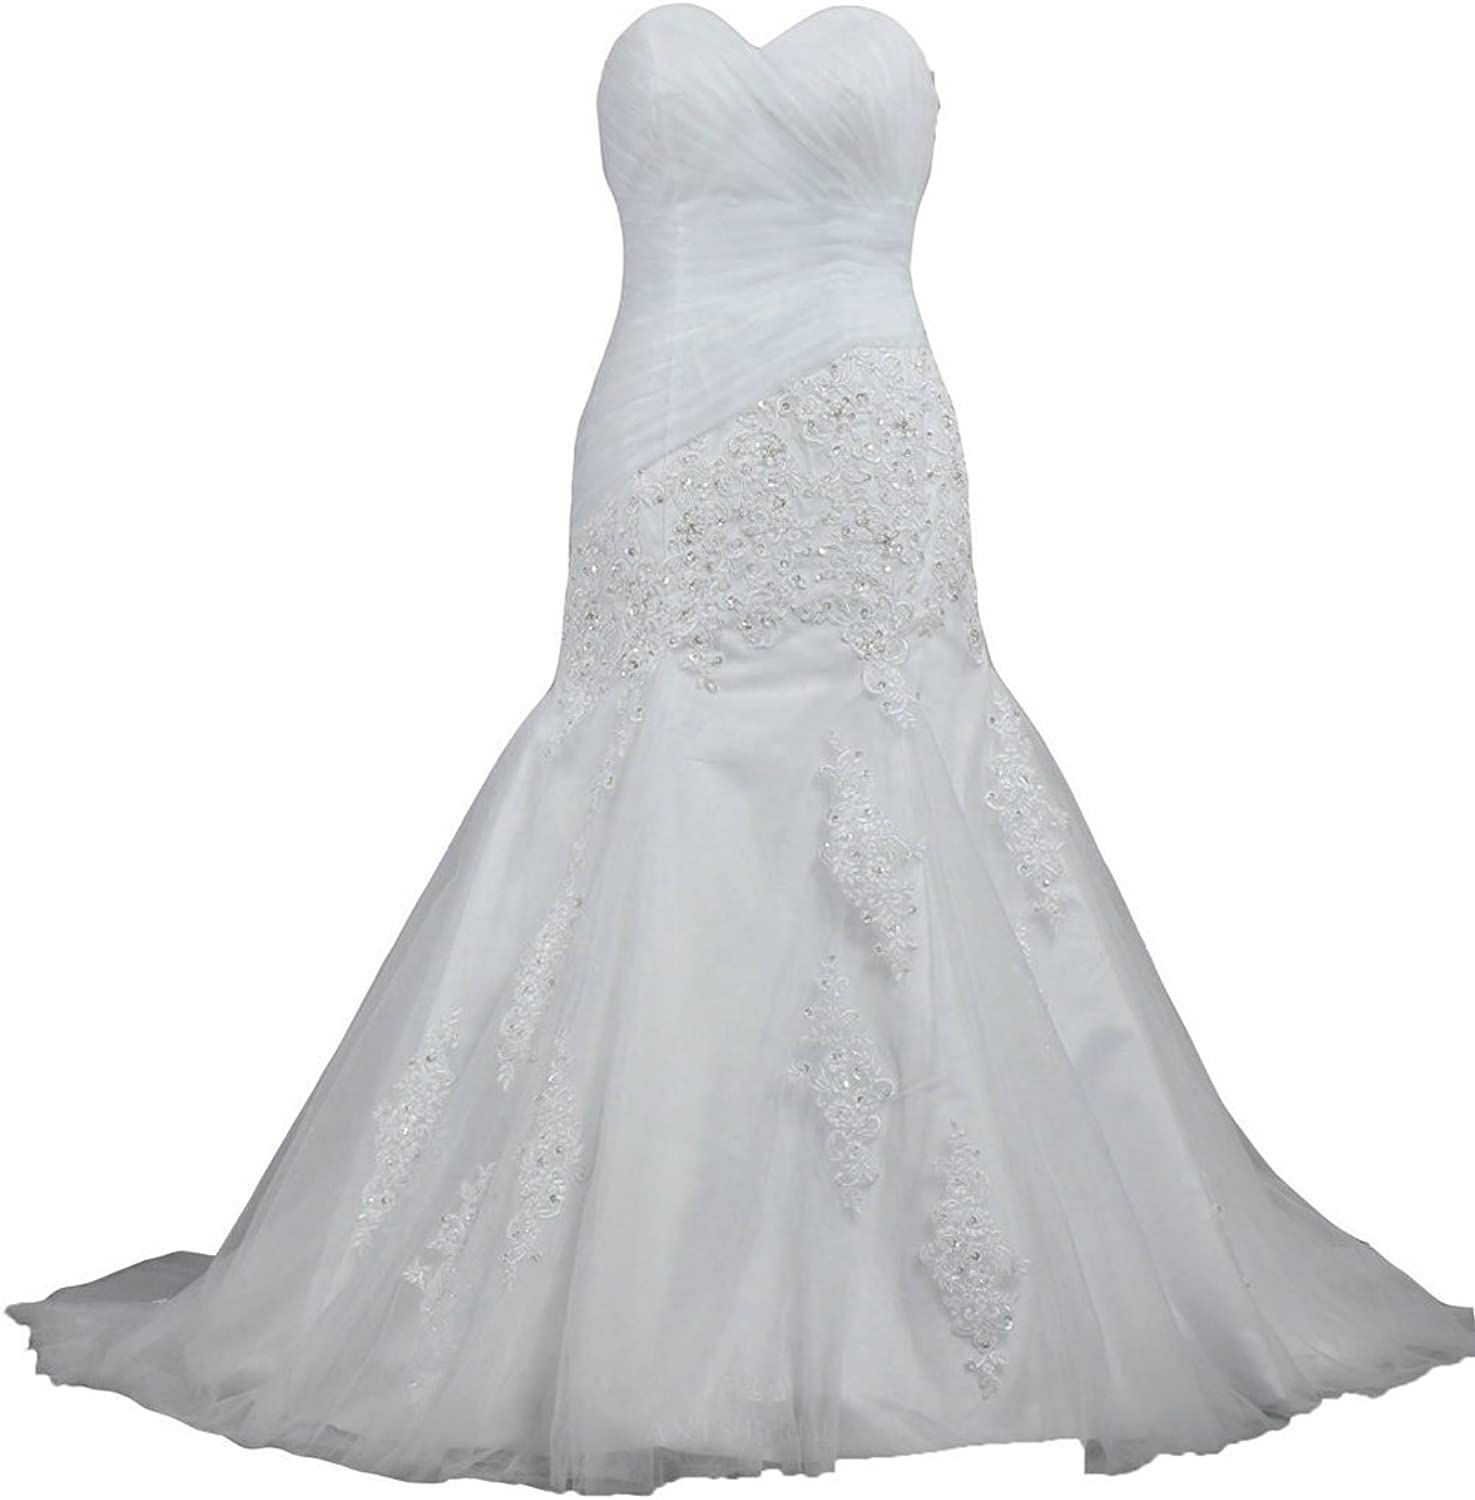 ANTS Sweetheart Organza Lace Tulle Mermaid Wedding Dresses for Bride